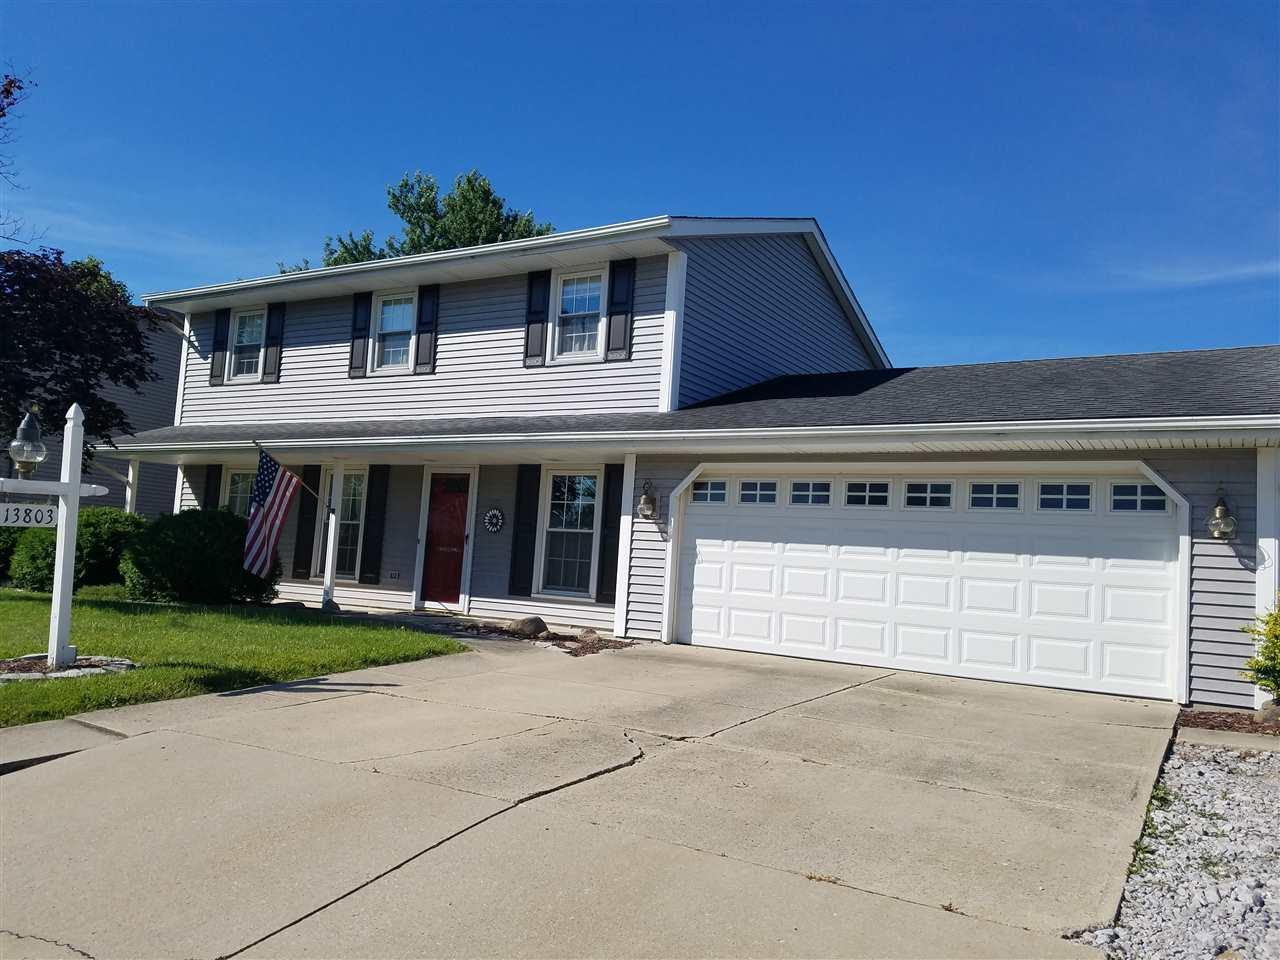 13803 Maple, Grabill, IN 46741